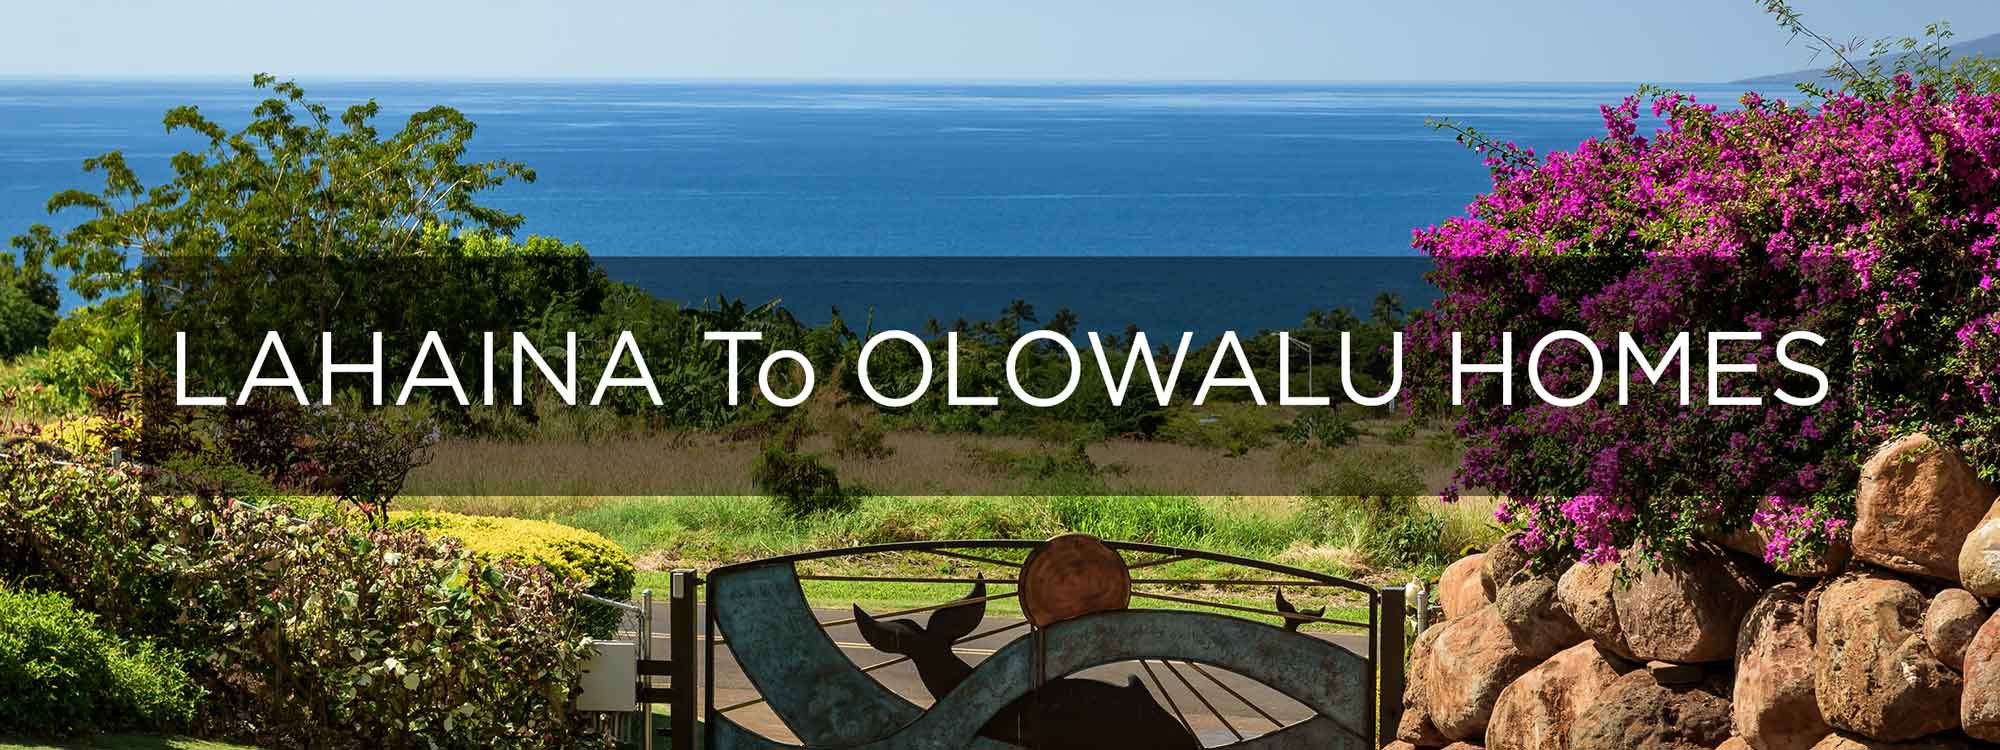 Maui, Luxury Homes and Estates for Sale from Lahaina to Olowalu